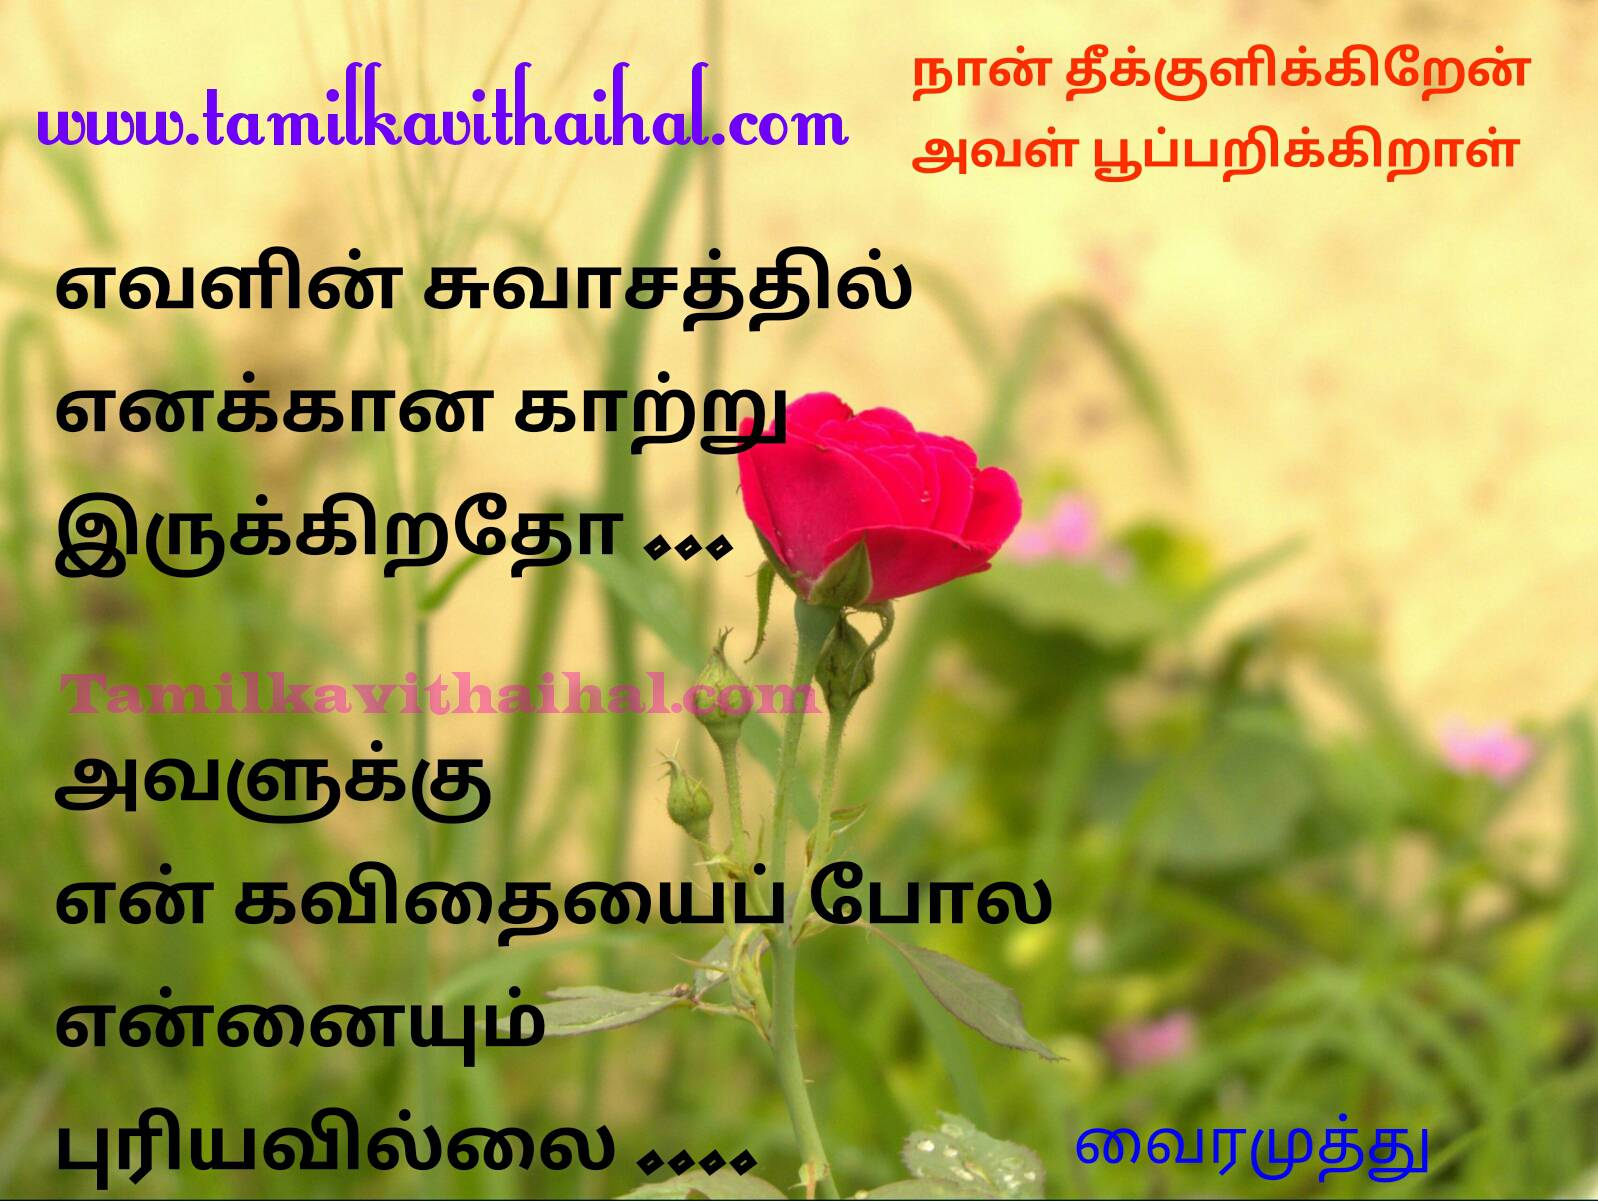 Beautiful vairamuthu tamil kavithaigal naan thekkulikiren aval pooparikiraal books love story boy emotional feel image 5